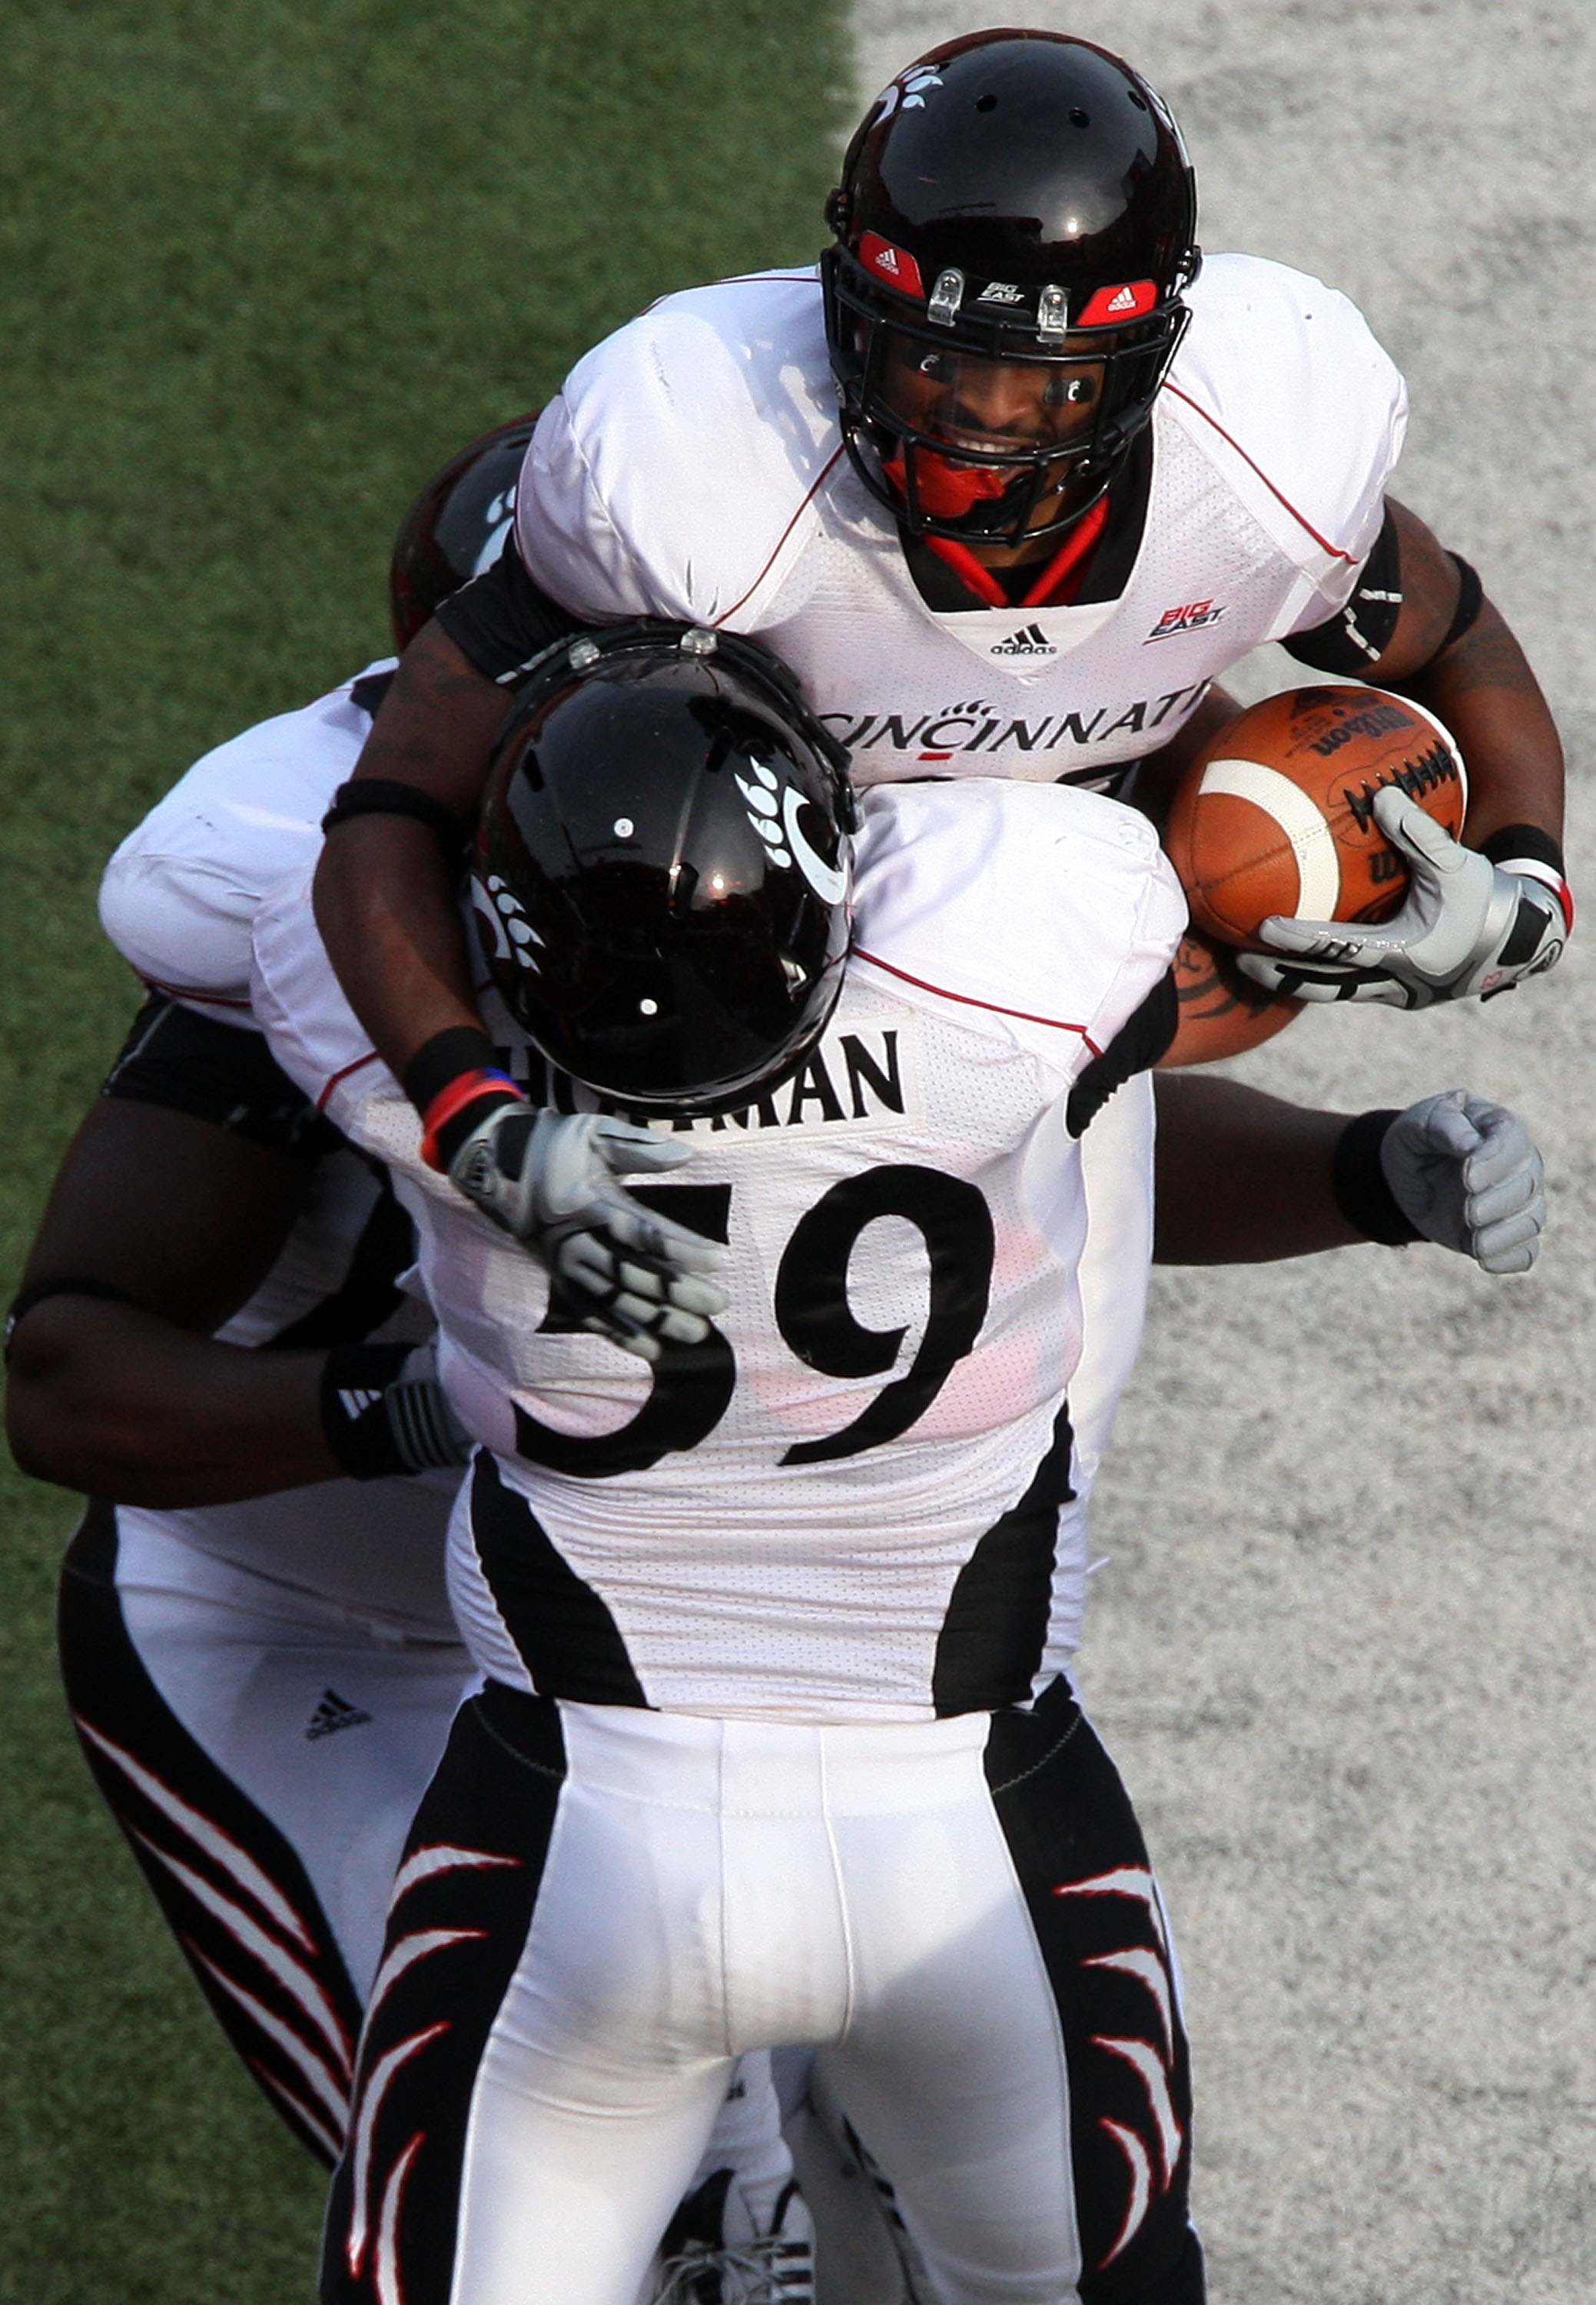 PISCATAWAY, NJ - SEPTEMBER 07:  Isaiah  Pead #23 of the Cincinnati Bearcats celebrates a touchdown against the Rutgers Scarlet Knights with teammate Alex Hoffman #59 at Rutgers Stadium on September 7, 2009 in Piscataway, New Jersey.  (Photo by Jim McIsaac